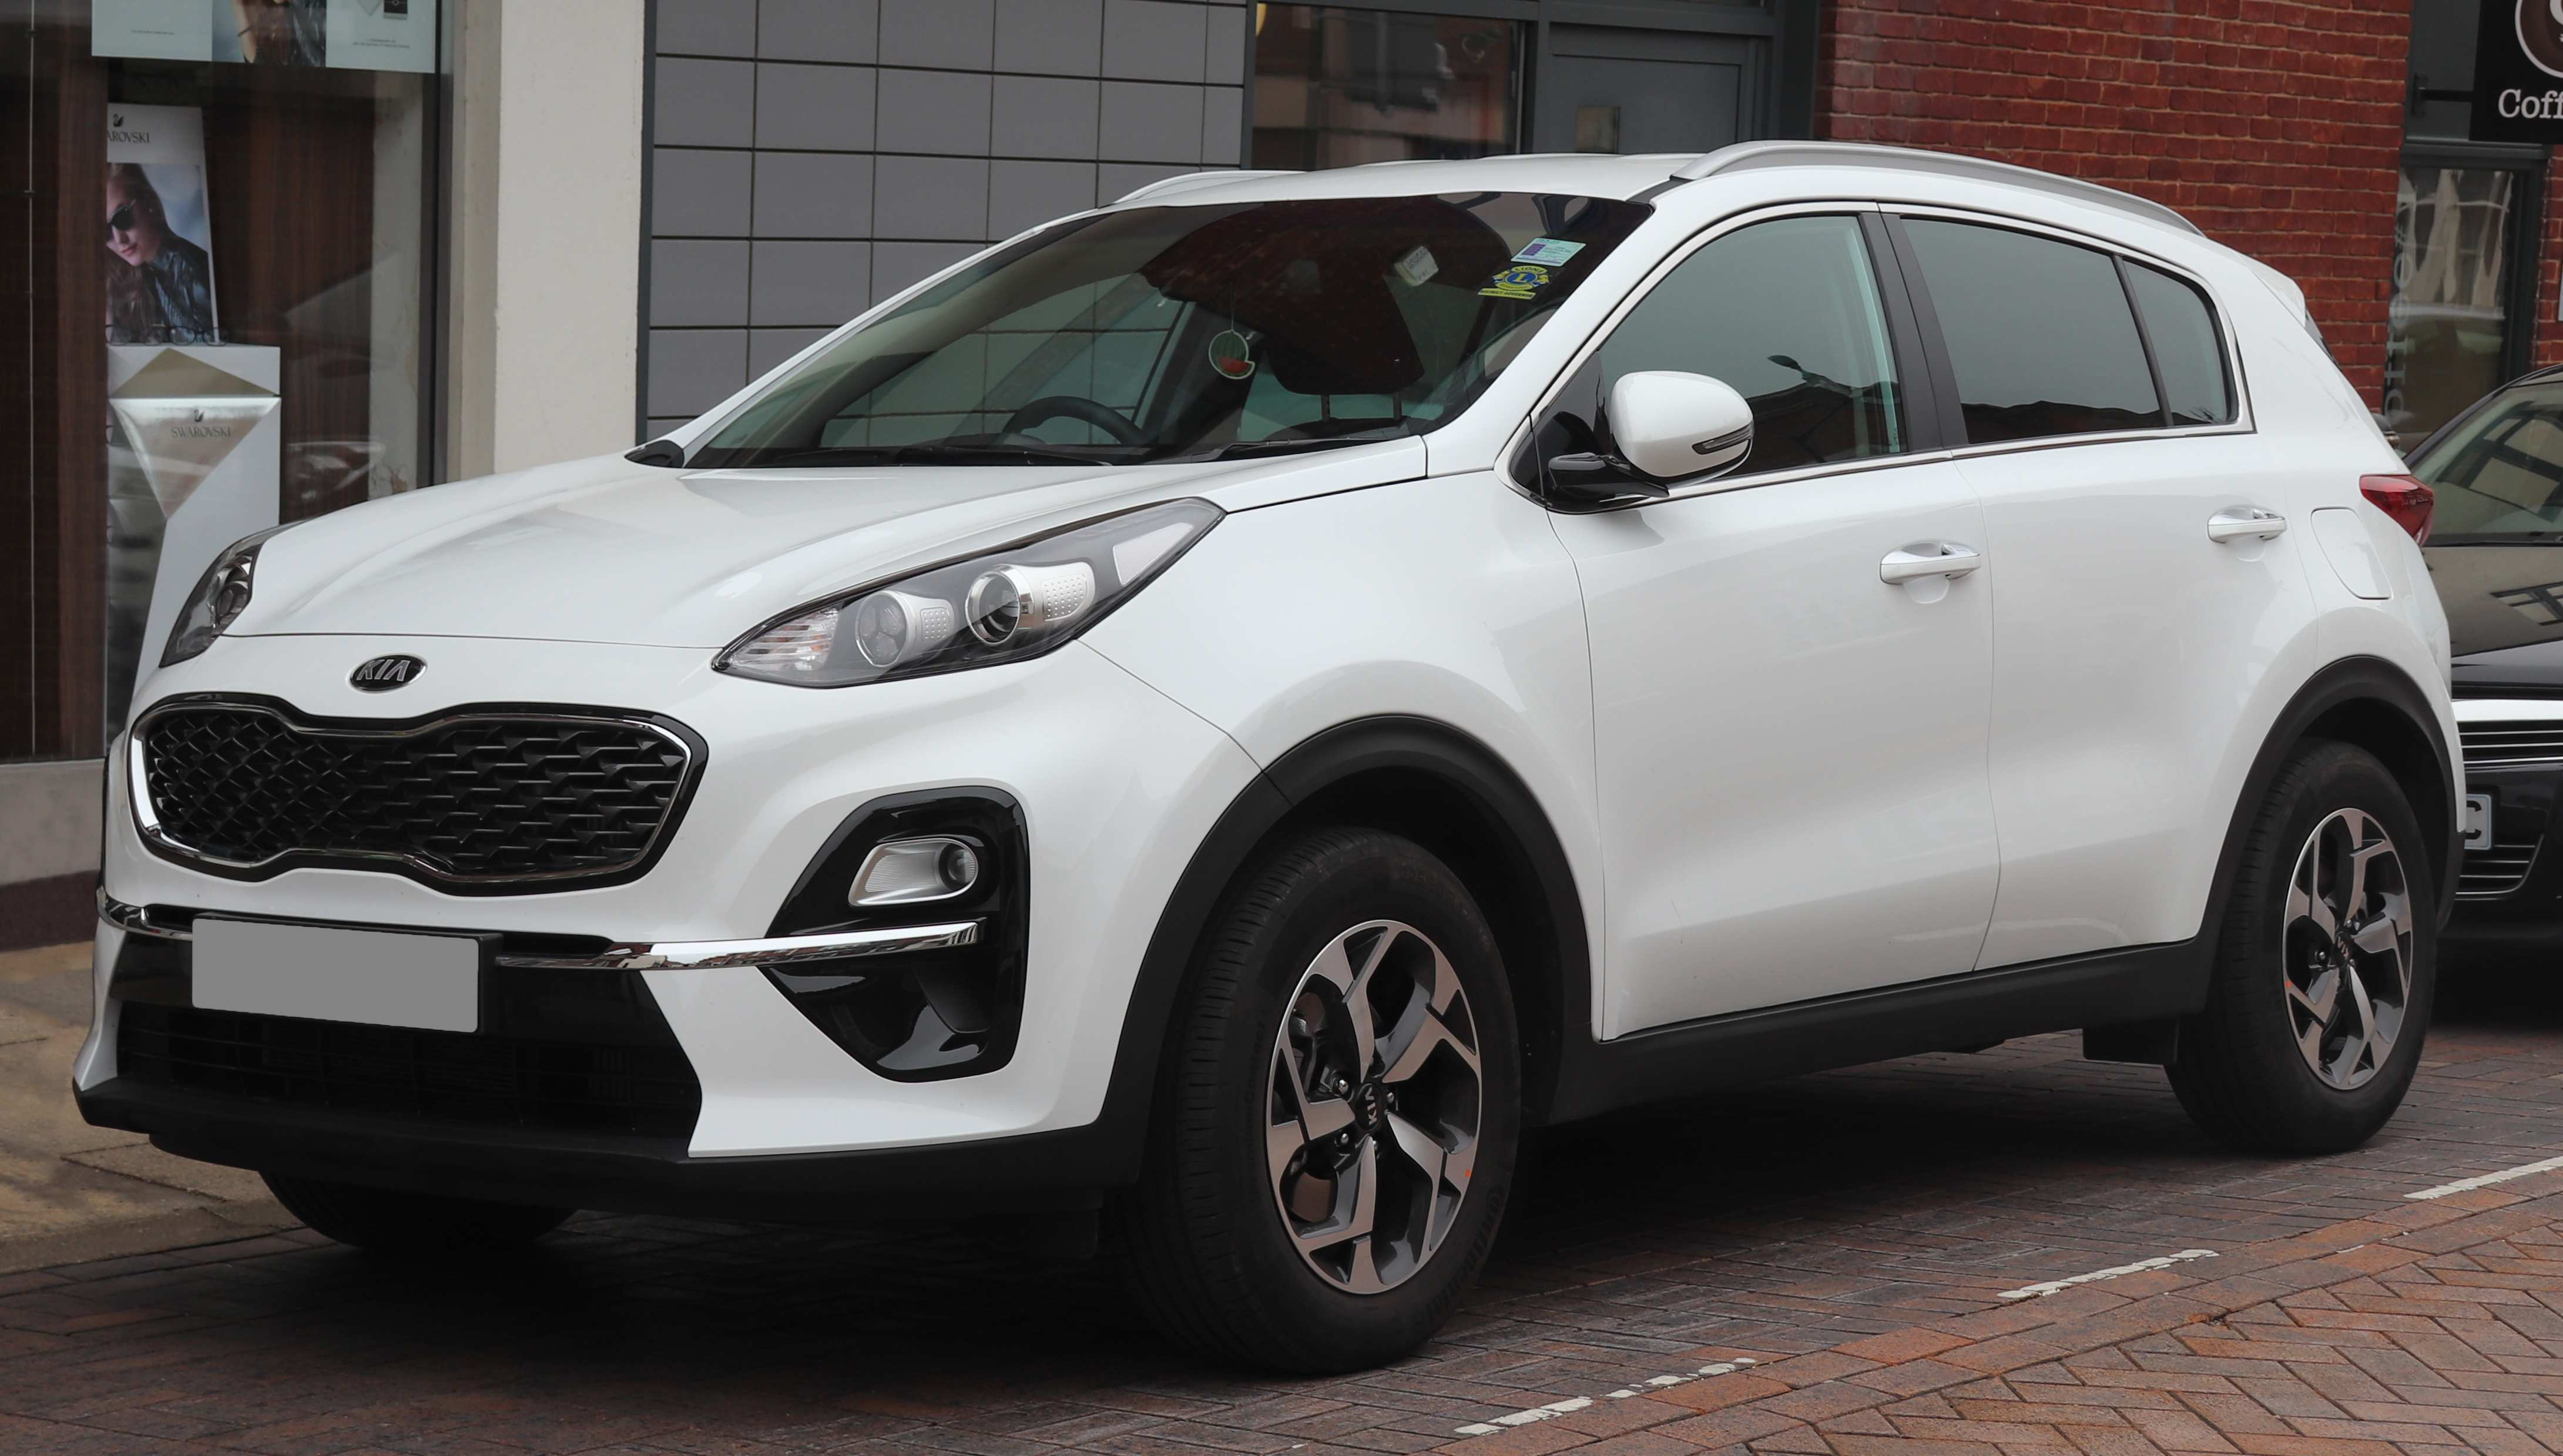 60 The The Kia Sportage 2019 Dimensions Release Date Price And Review Spy Shoot by The Kia Sportage 2019 Dimensions Release Date Price And Review